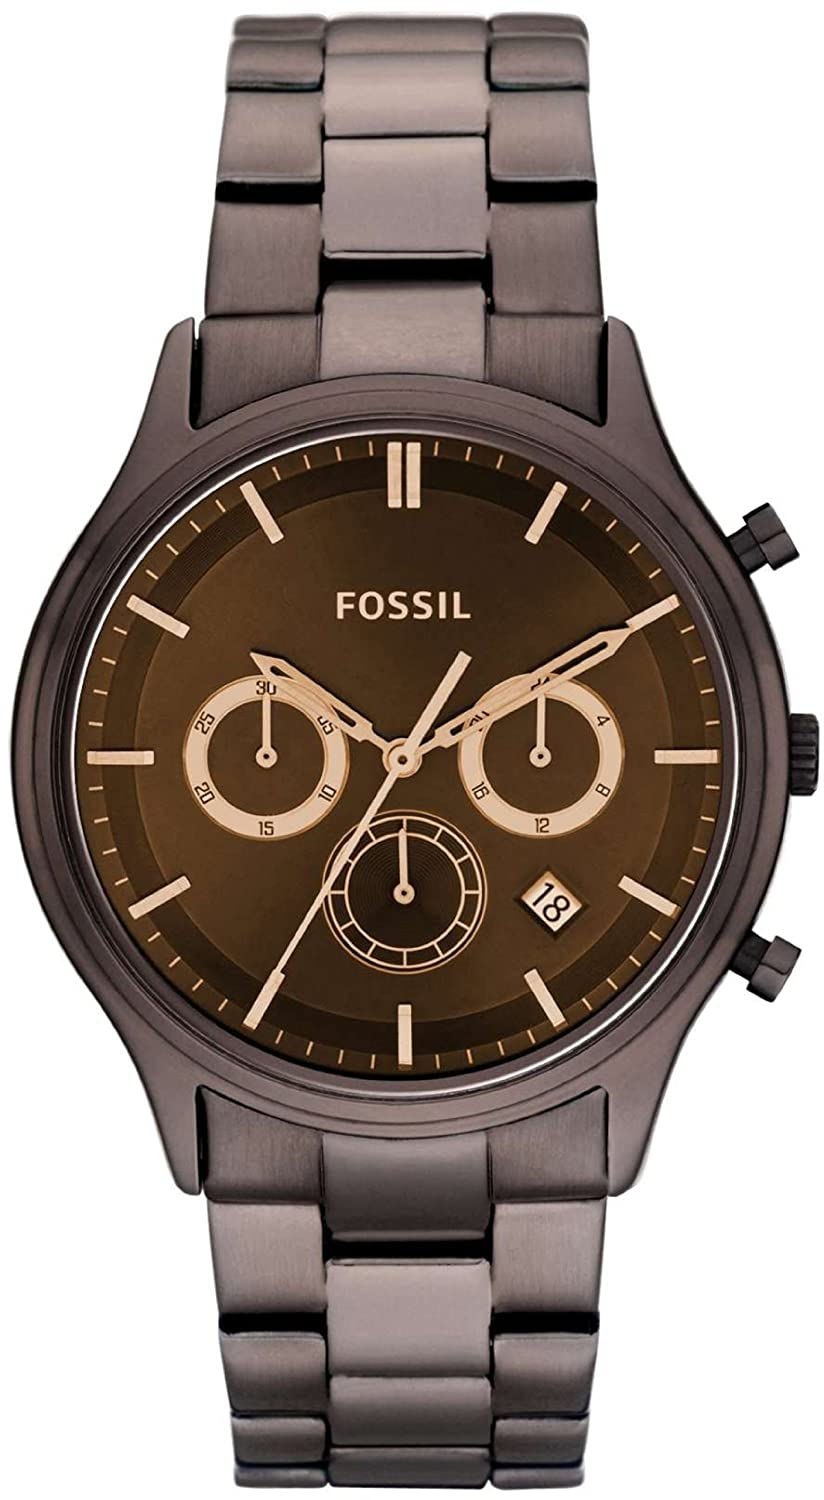 Fossil Ansel Stainless Steel Watch – Brown Watch Fossil